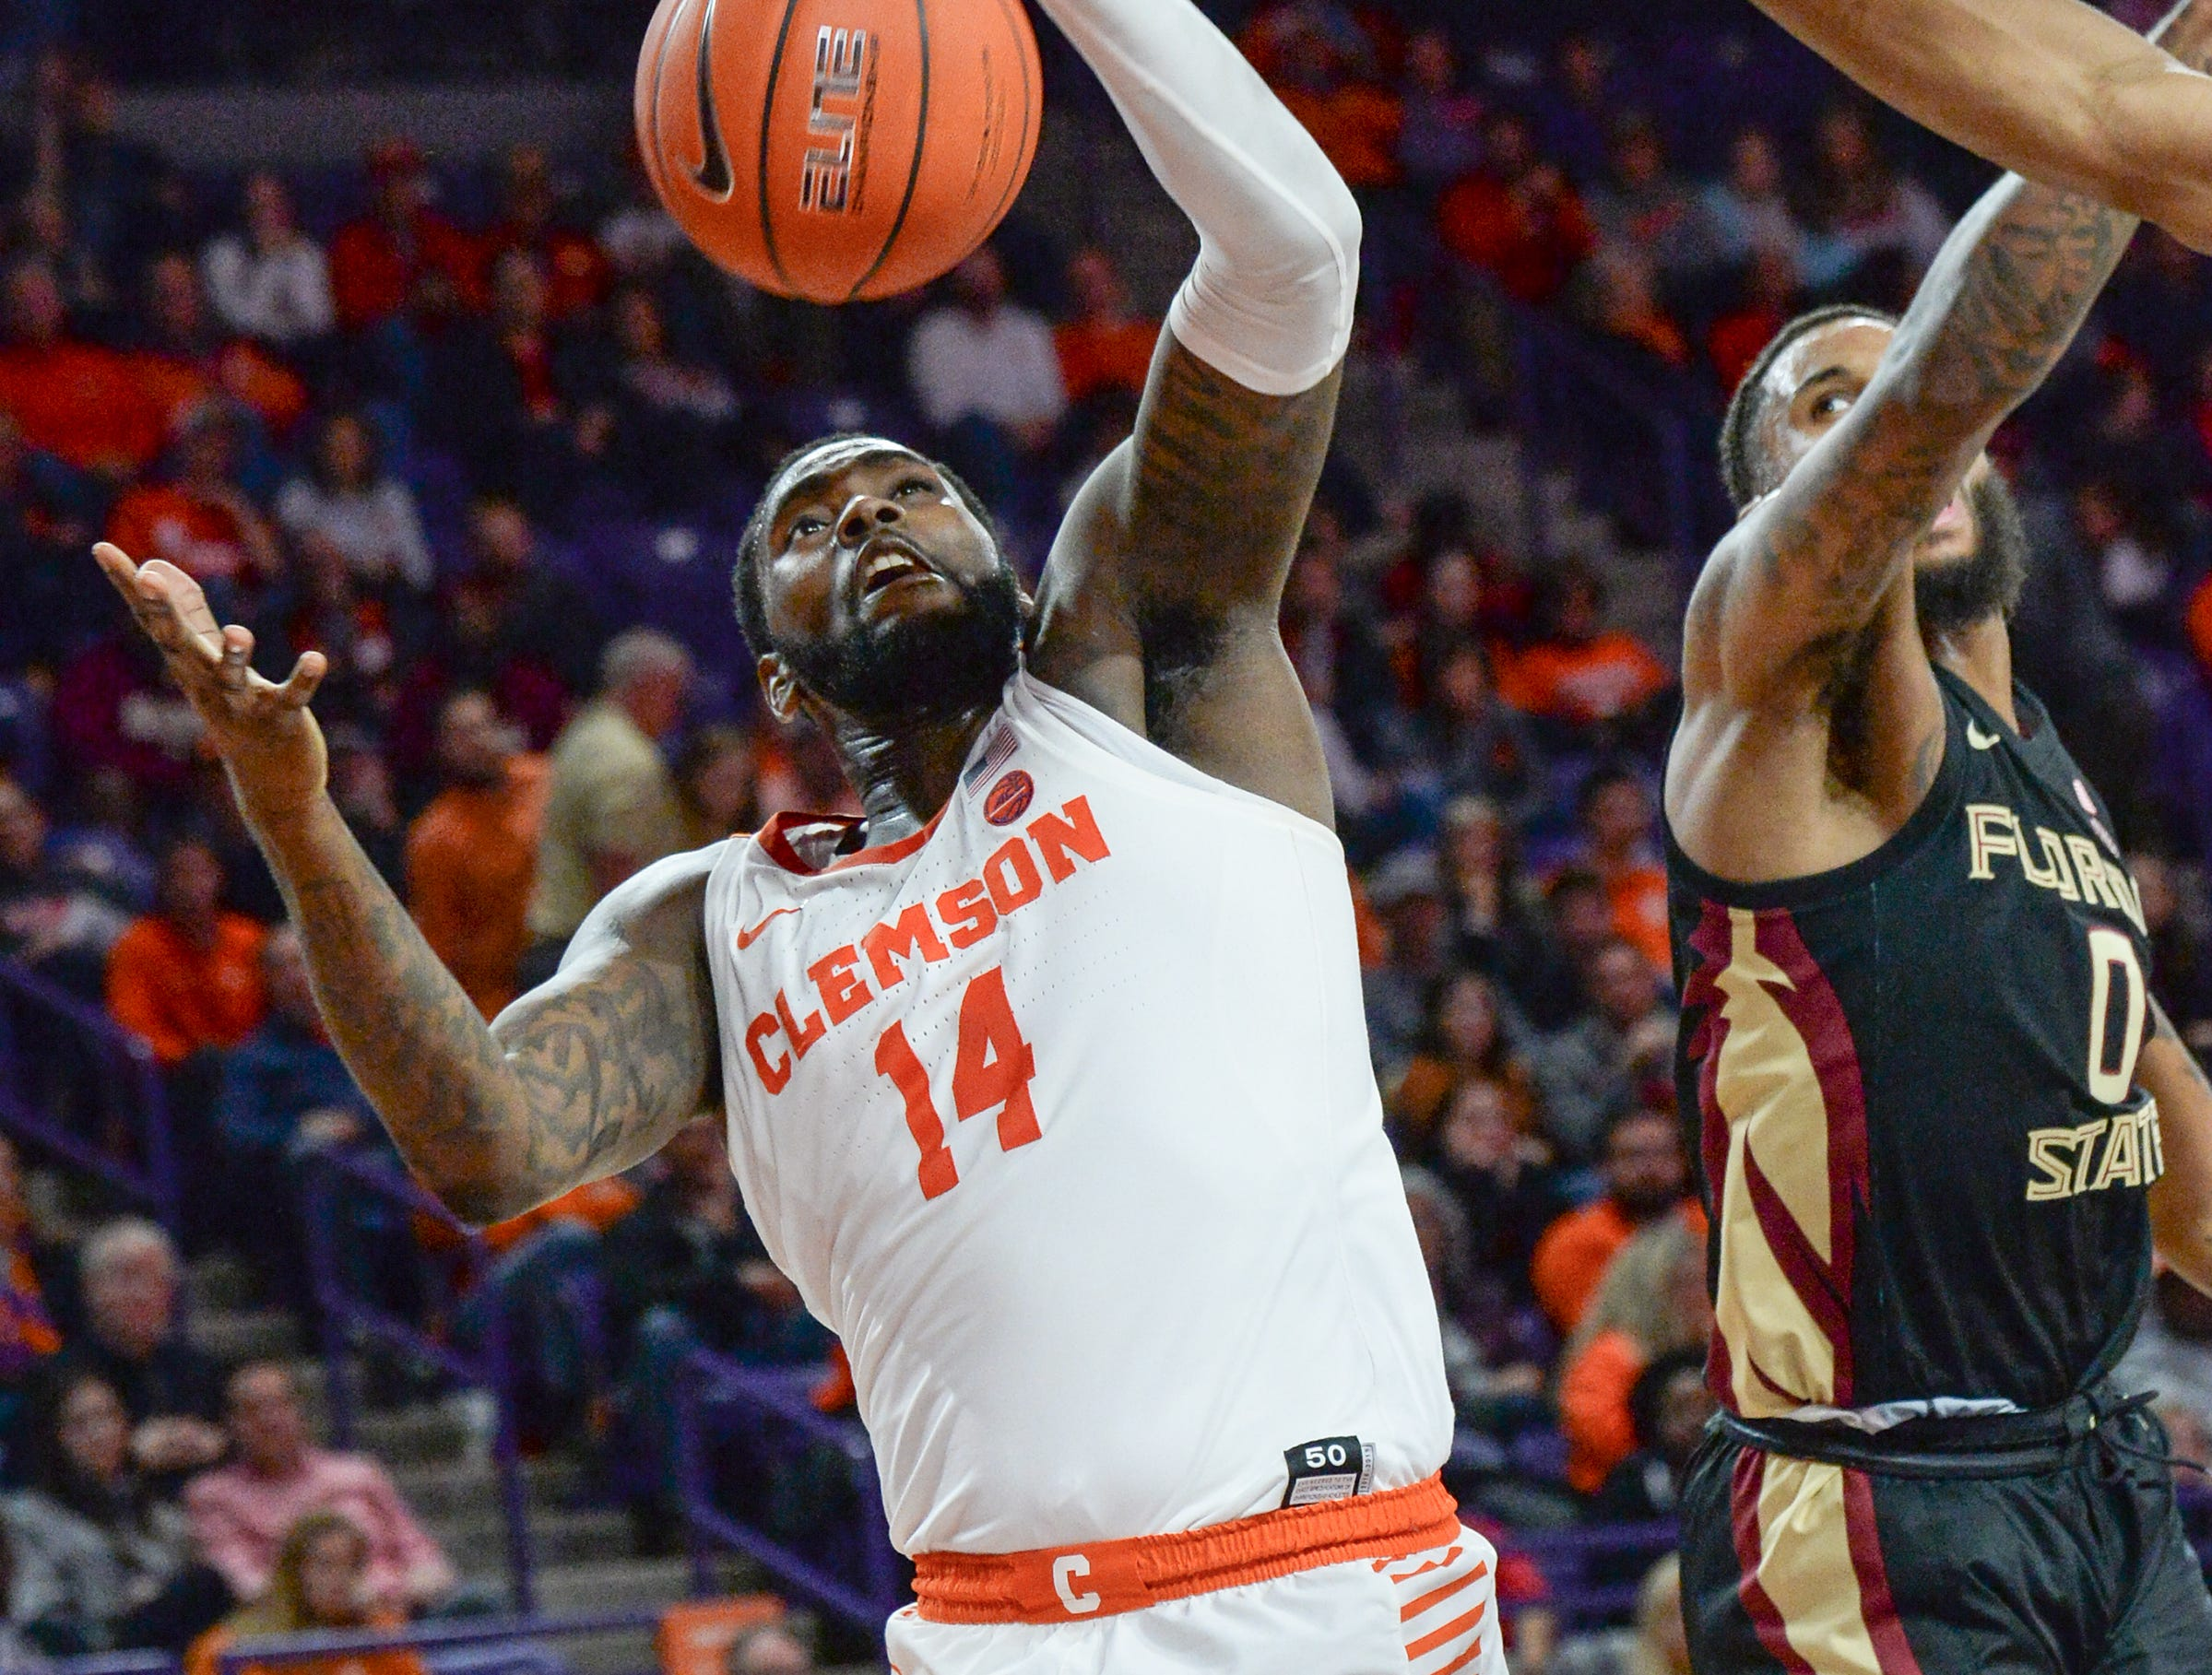 Clemson forward Elijah Thomas (14) rebounds near Florida State forward Phil Cofer(0) during the first half at Littlejohn Coliseum in Clemson Tuesday, February 19, 2019.